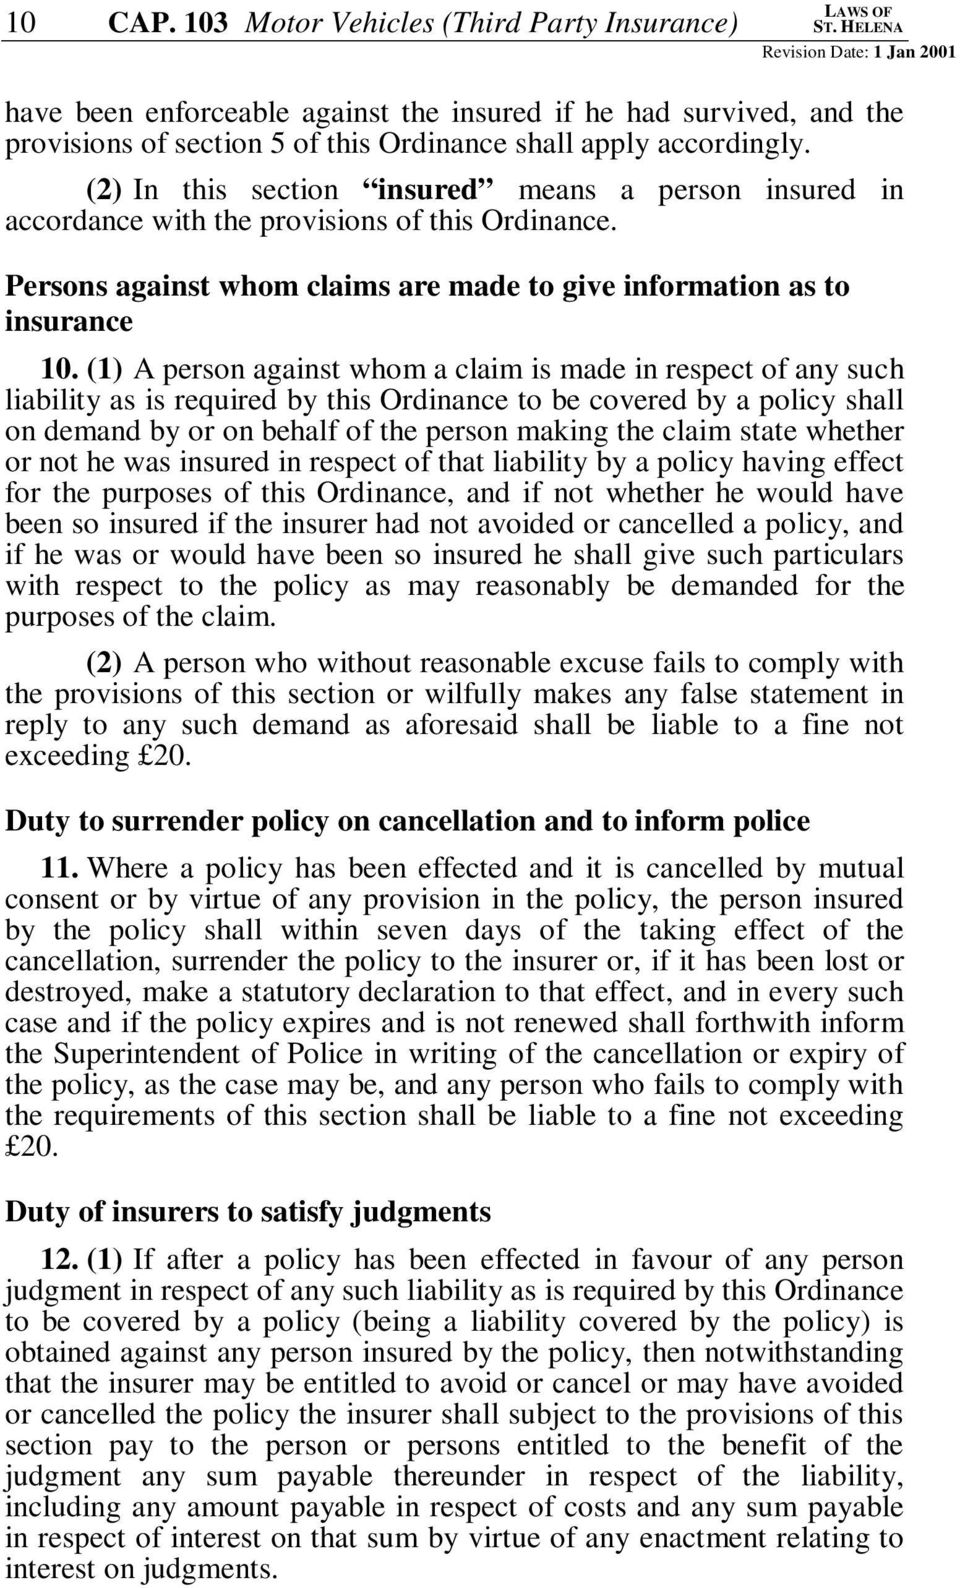 (1) A person against whom a claim is made in respect of any such liability as is required by this Ordinance to be covered by a policy shall on demand by or on behalf of the person making the claim